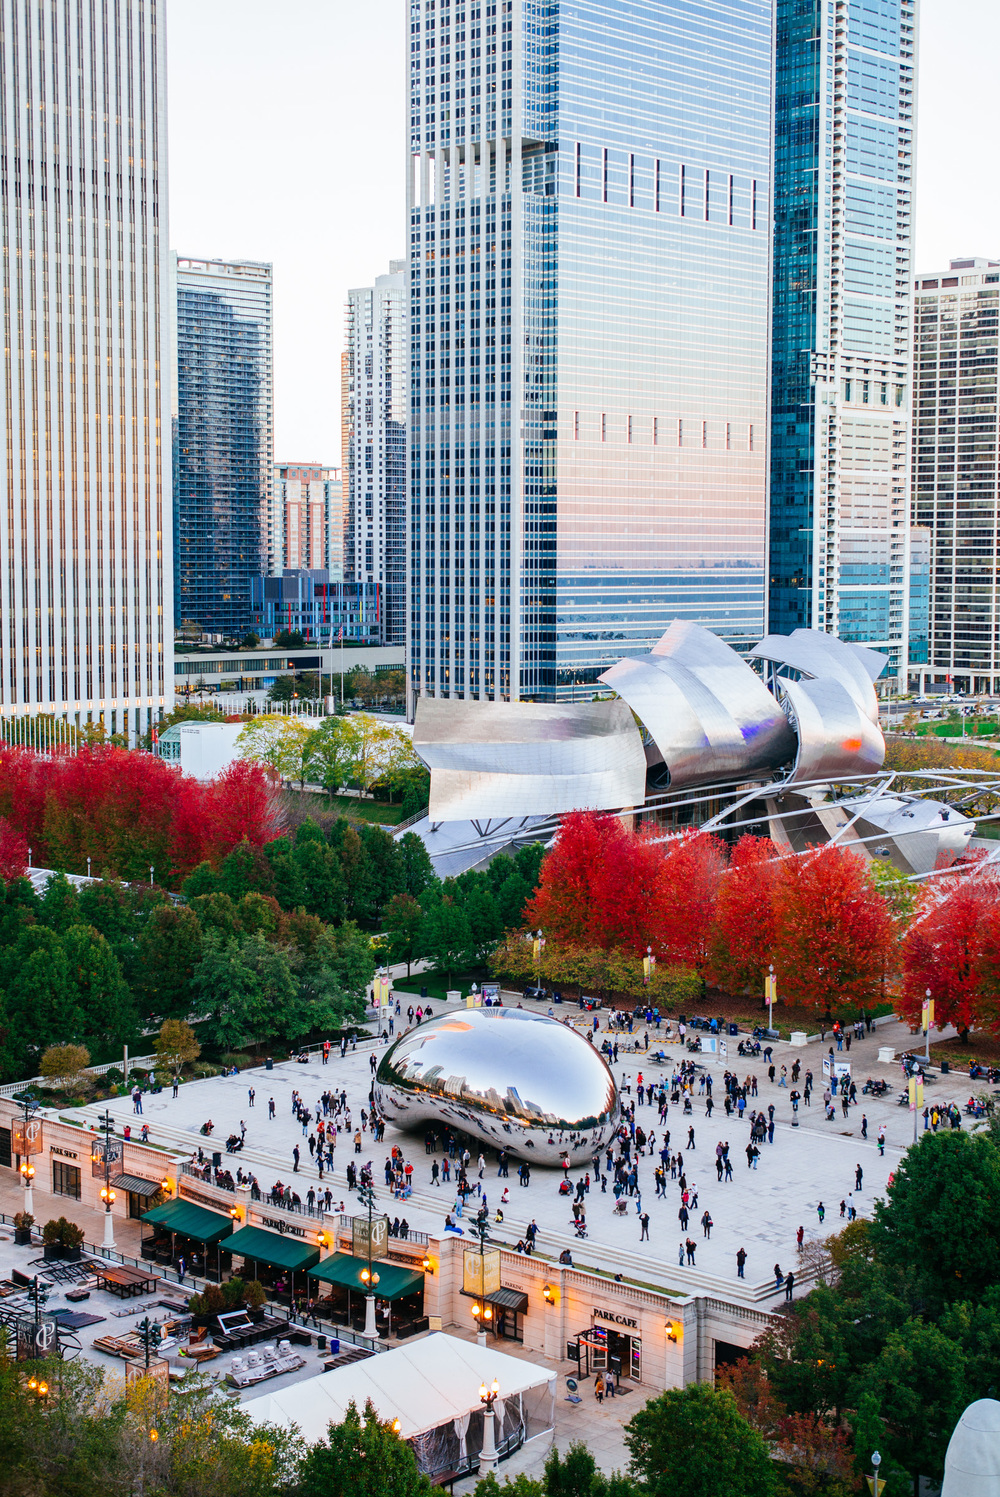 Chicago Millennium Park and it's centerpiece the Cloud Gate, or simply known as The Beat designed by Anish Kapoor.